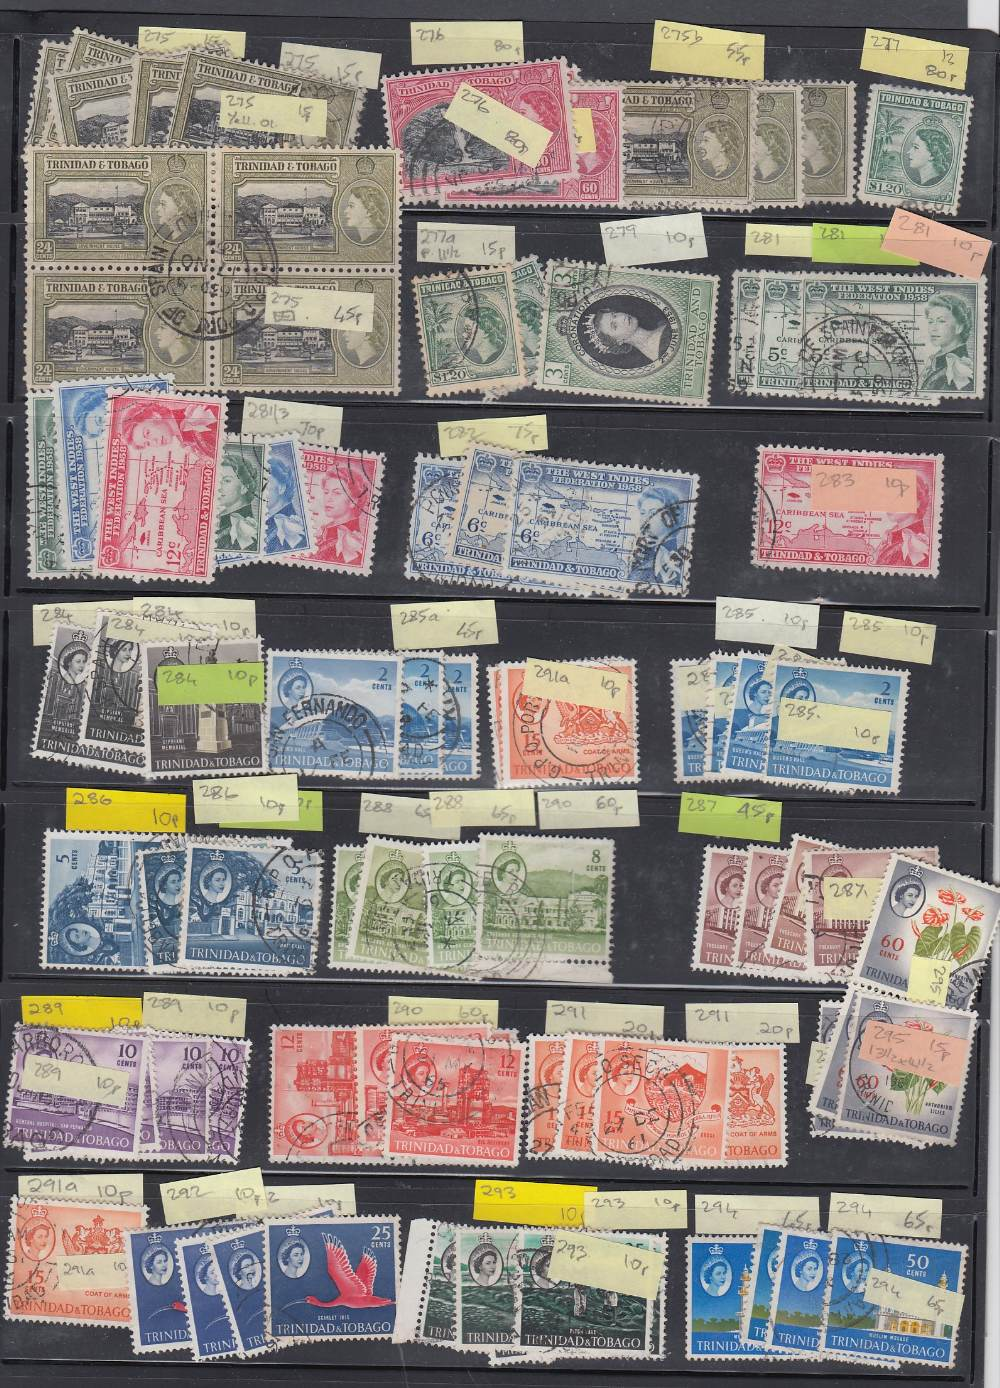 TRINIDAD AND TABAGO STAMPS Early to moderns ex-dealers stock on 29 stock pages, mint and used,